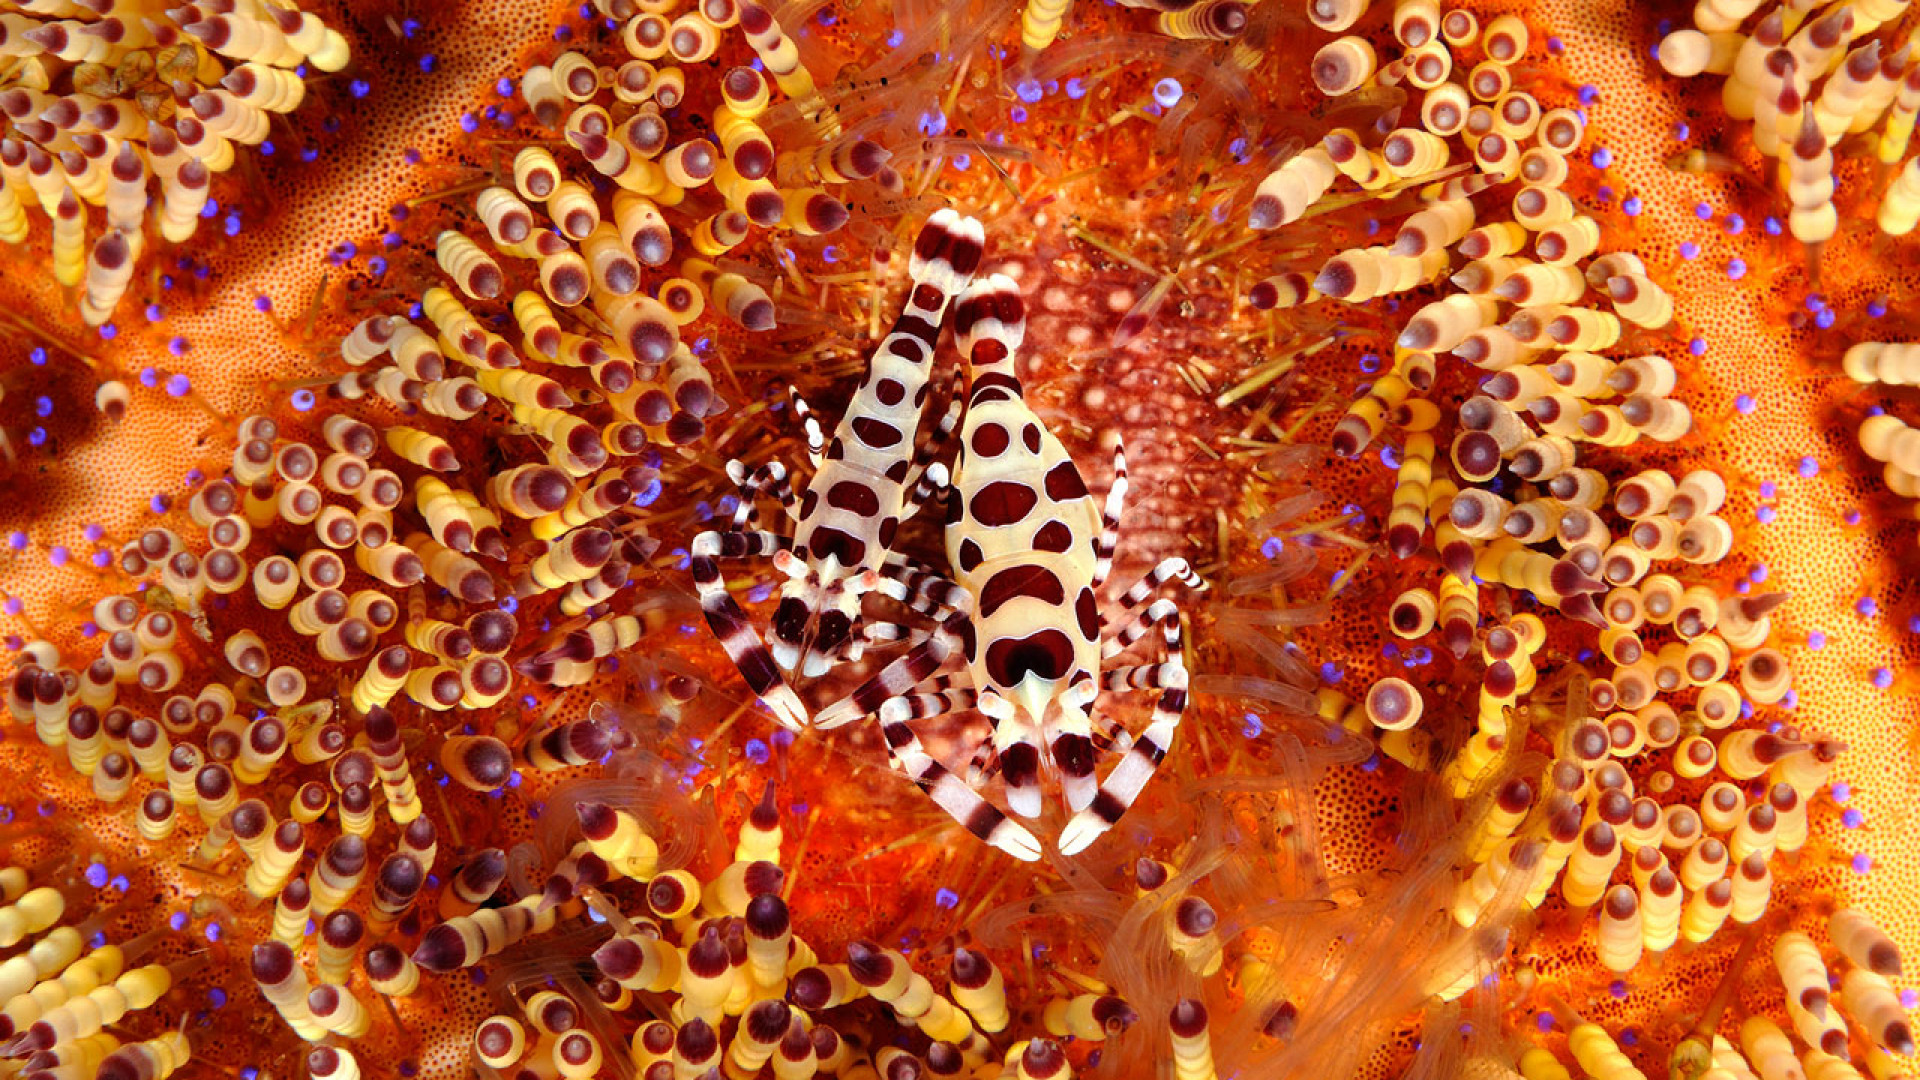 Shrimps evade the poisonous quills of a fire urchin off the island of Bali